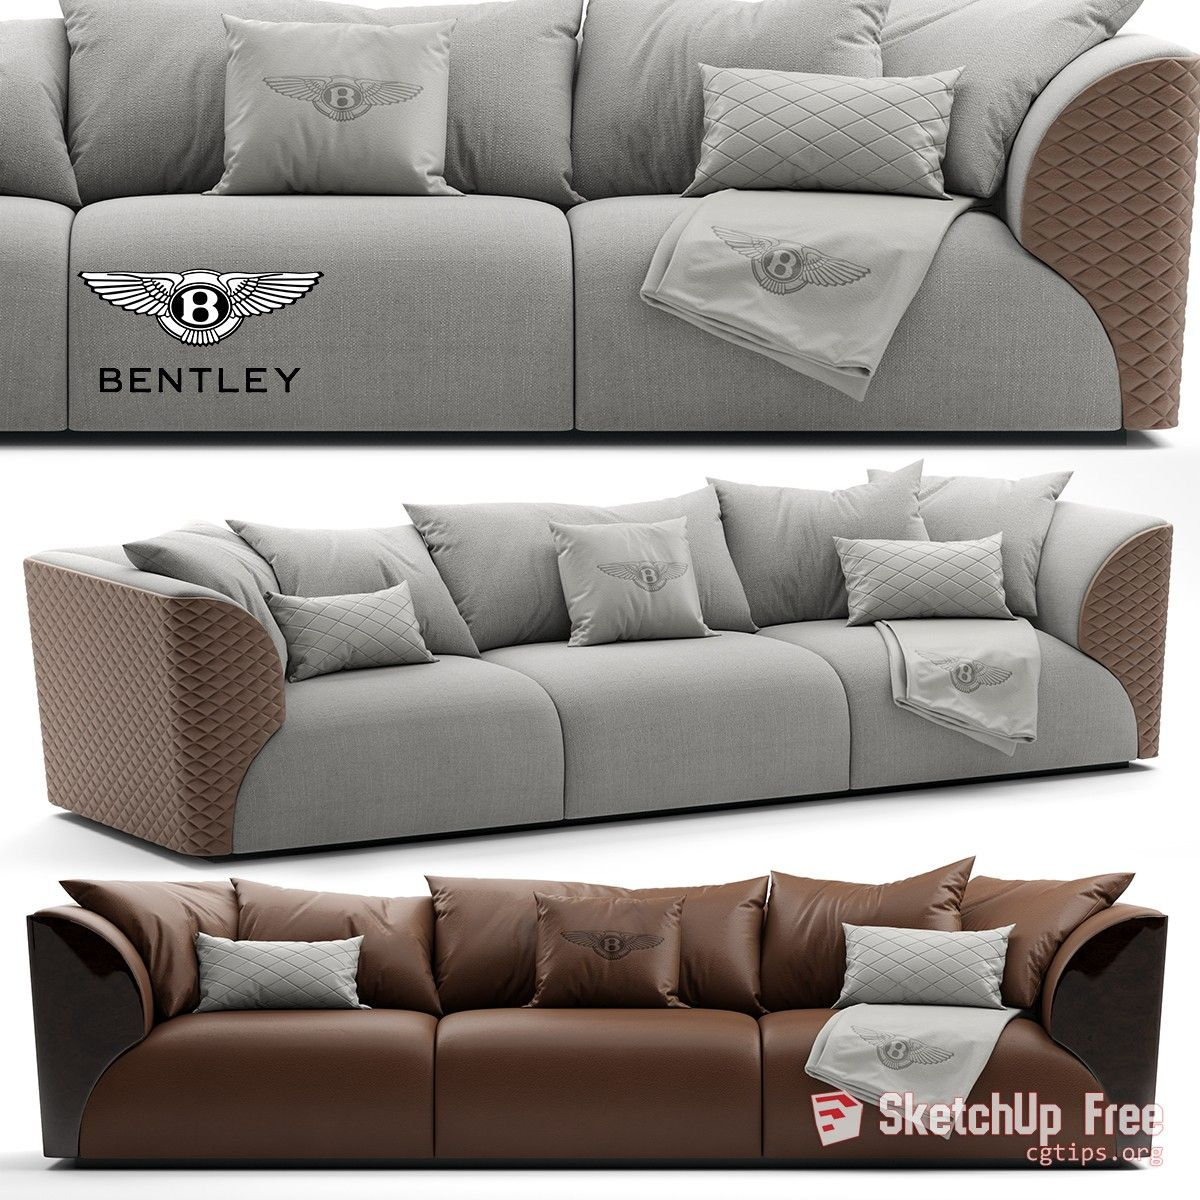 2132 Sofa Sketchup Model Free Download